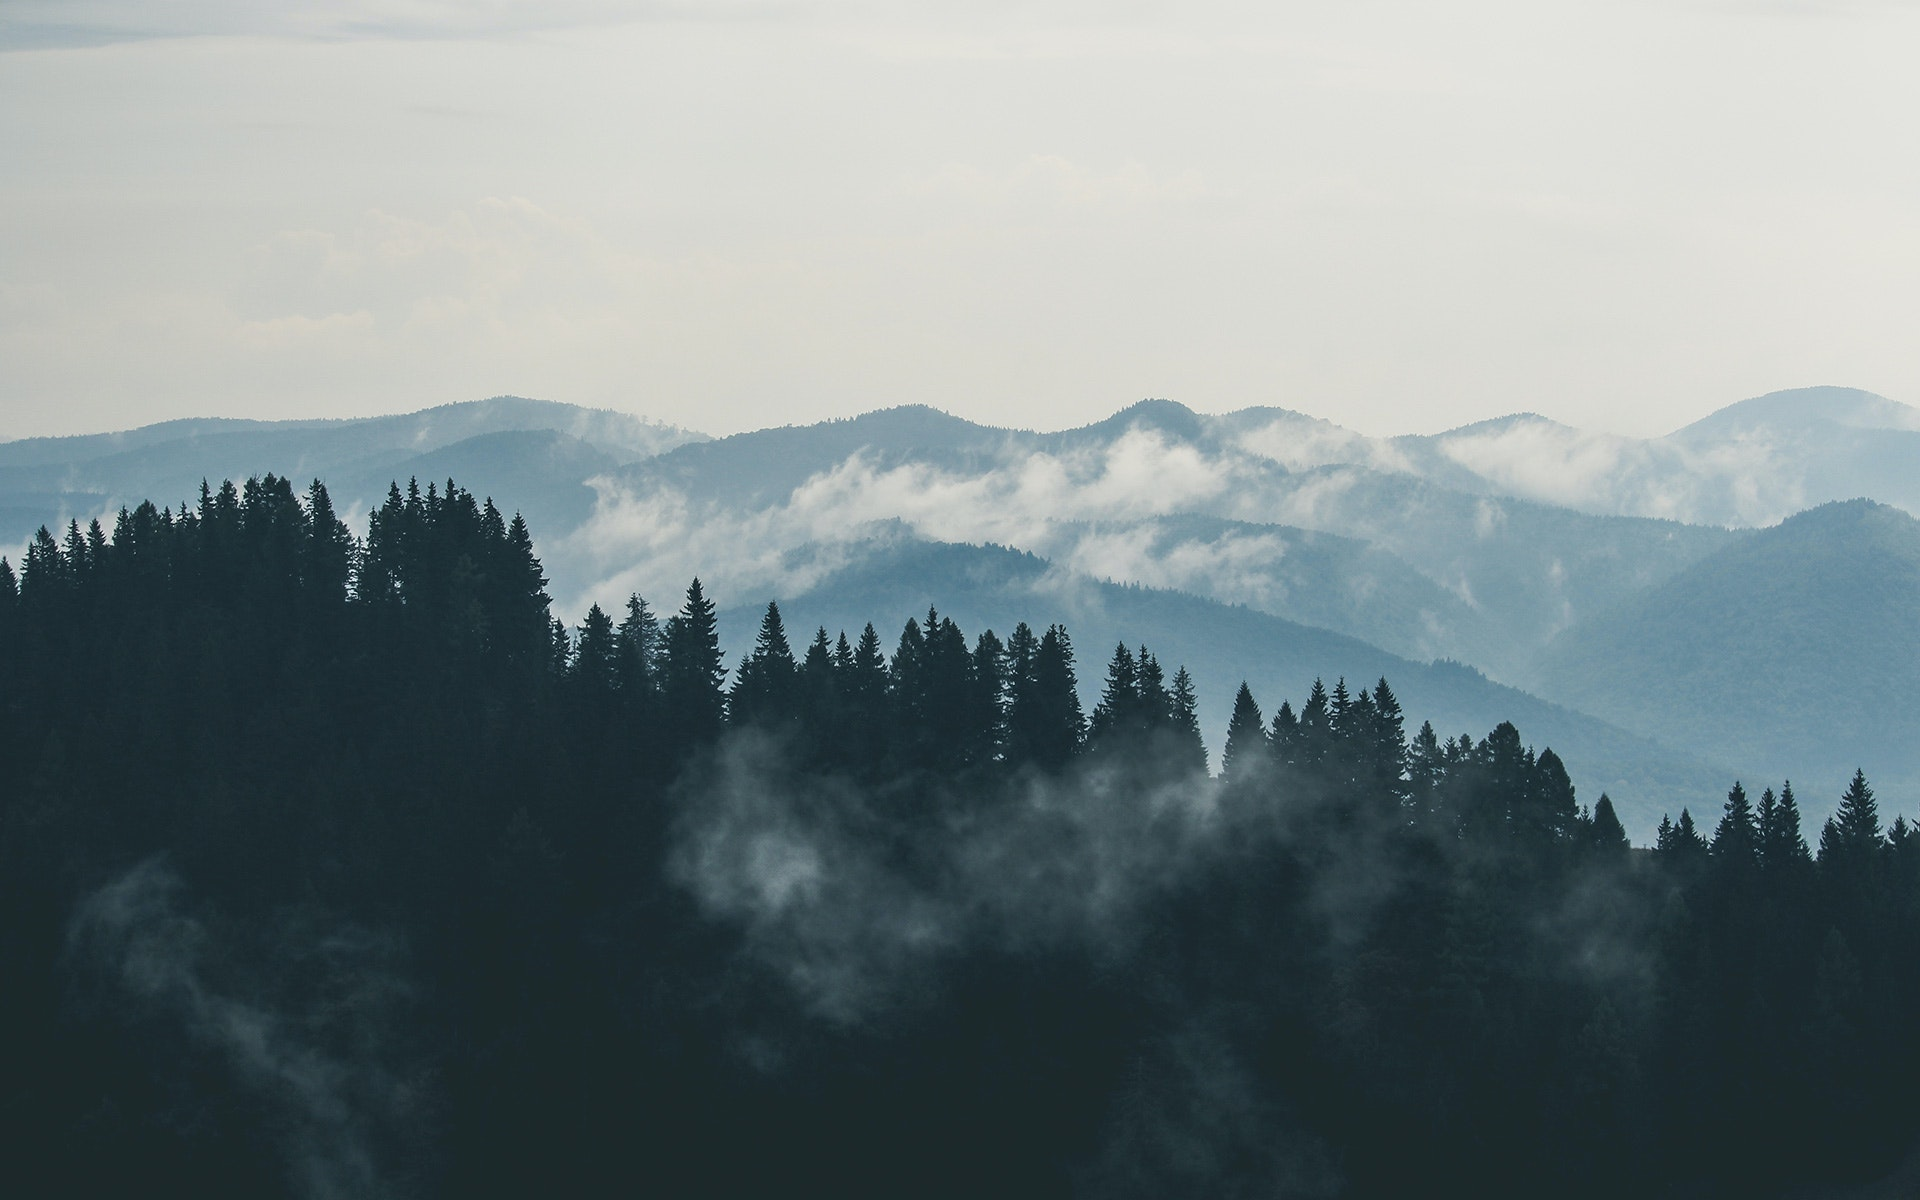 Must see Wallpaper Mountain Cloud - mountains-clouds-forest-fog  Photograph_785356.jpg\u0026fm\u003djpg